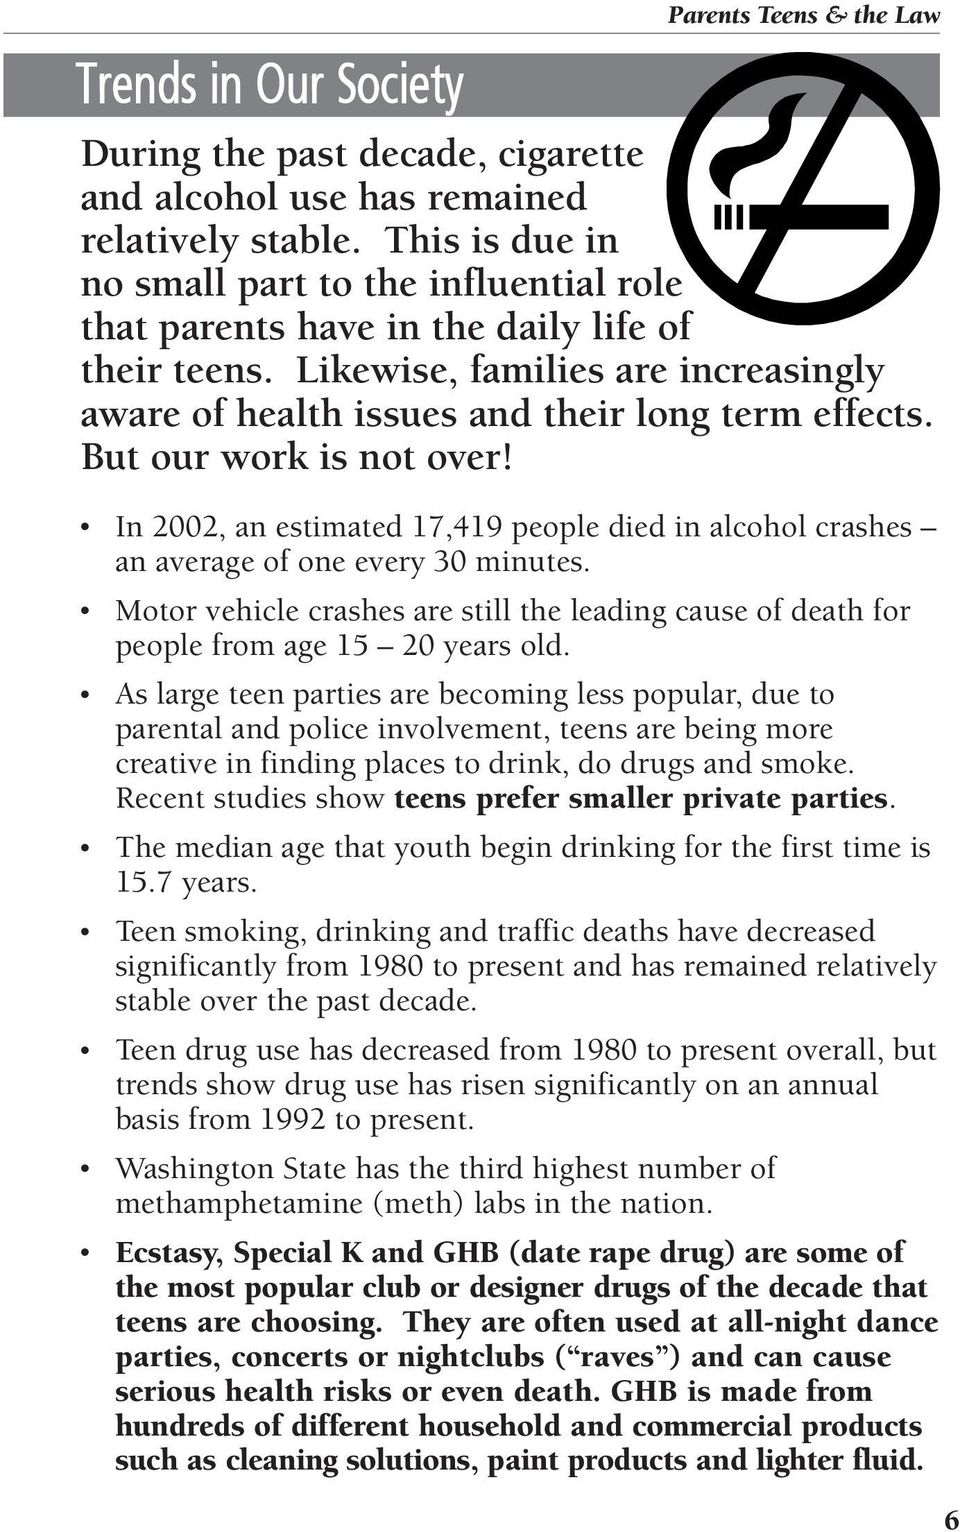 But our work is not over! In 2002, an estimated 17,419 people died in alcohol crashes an average of one every 30 minutes.